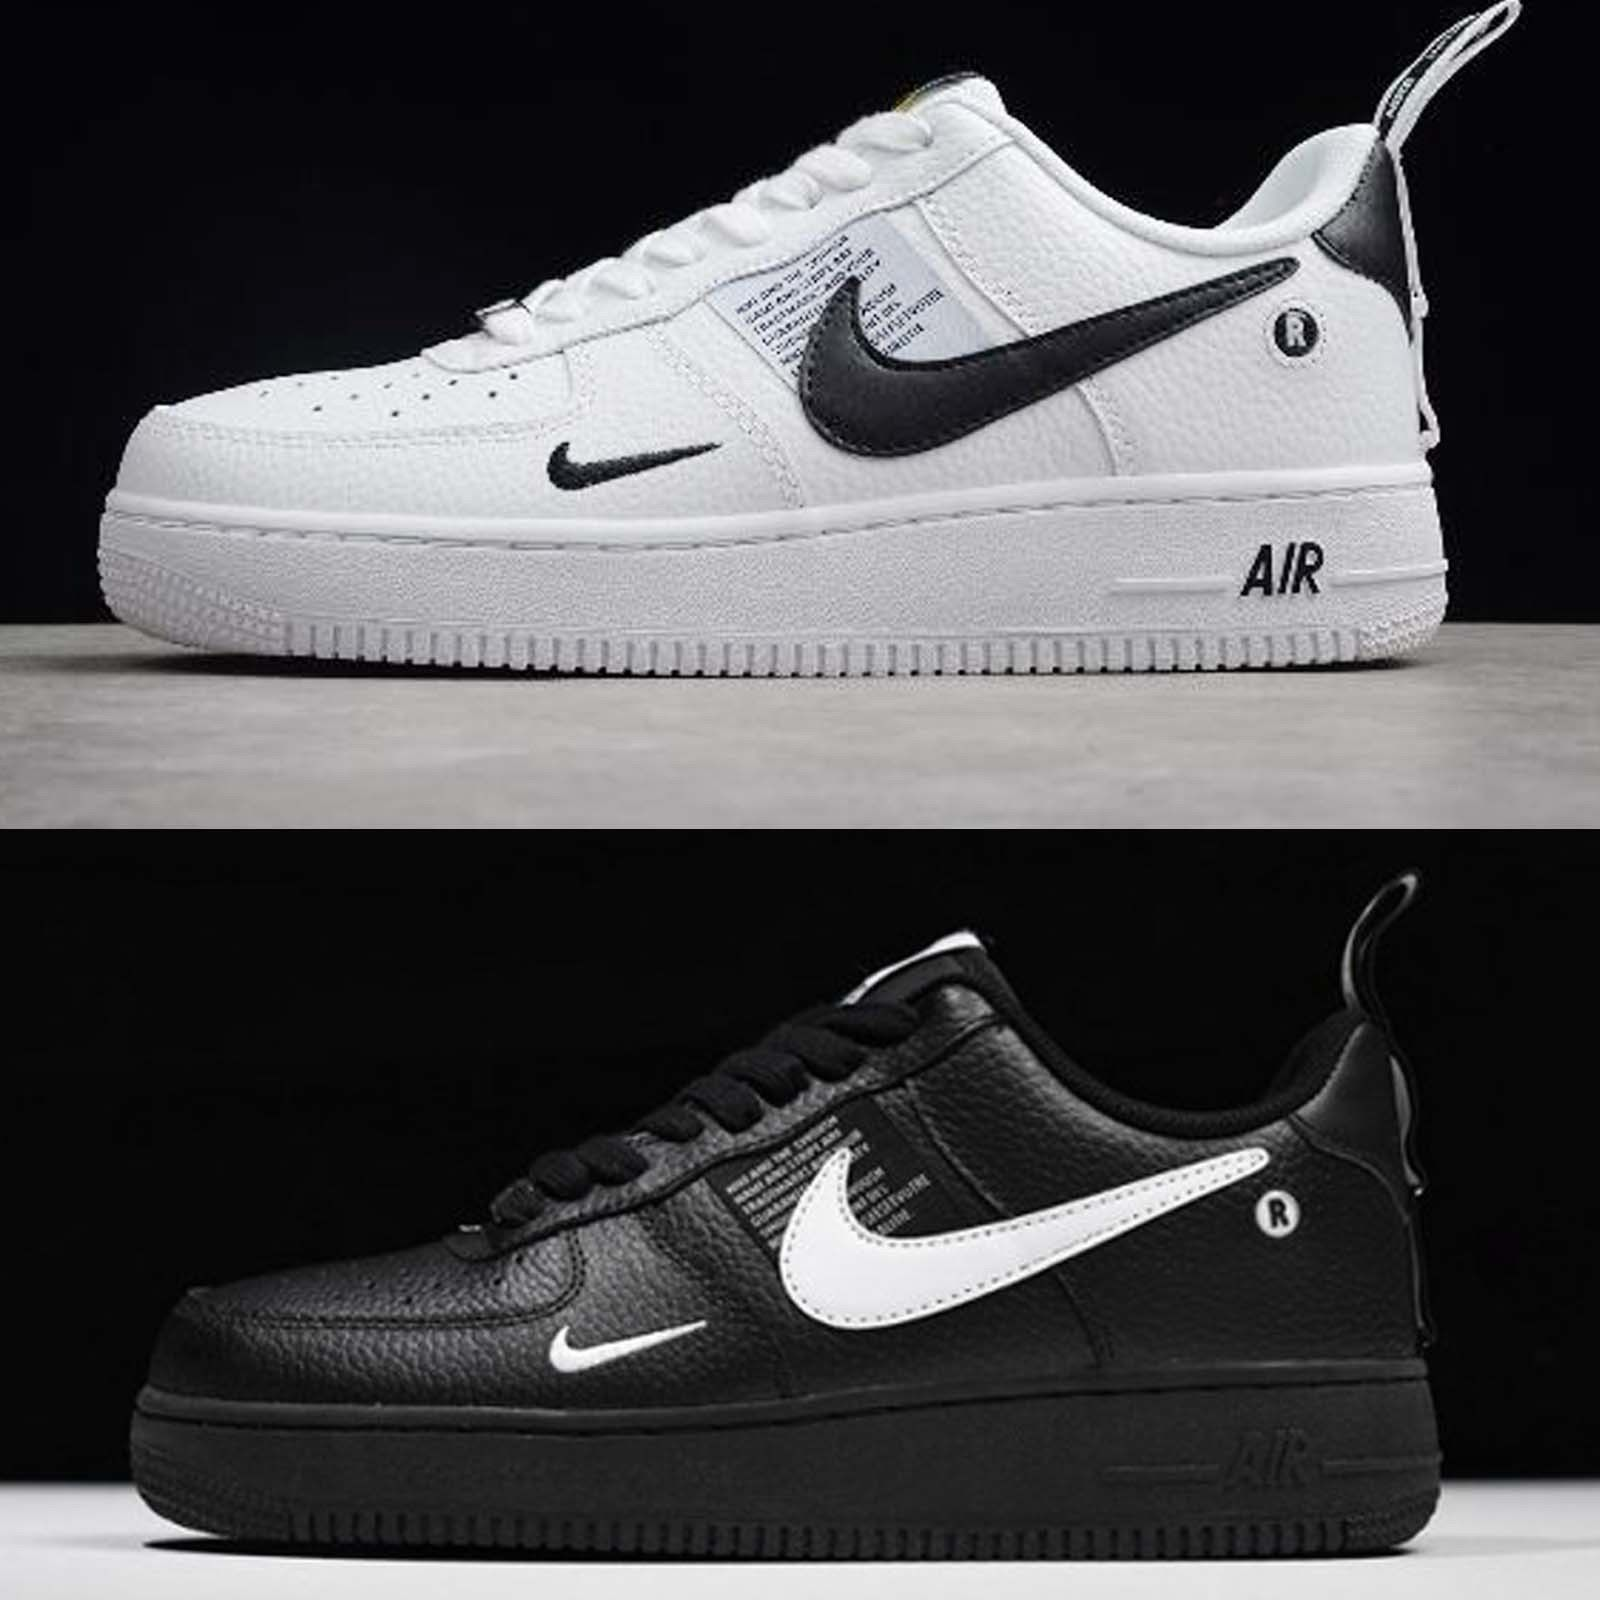 new arrival 6294d 8c15d Nike Air Force 1 07 LV8 utility back and white